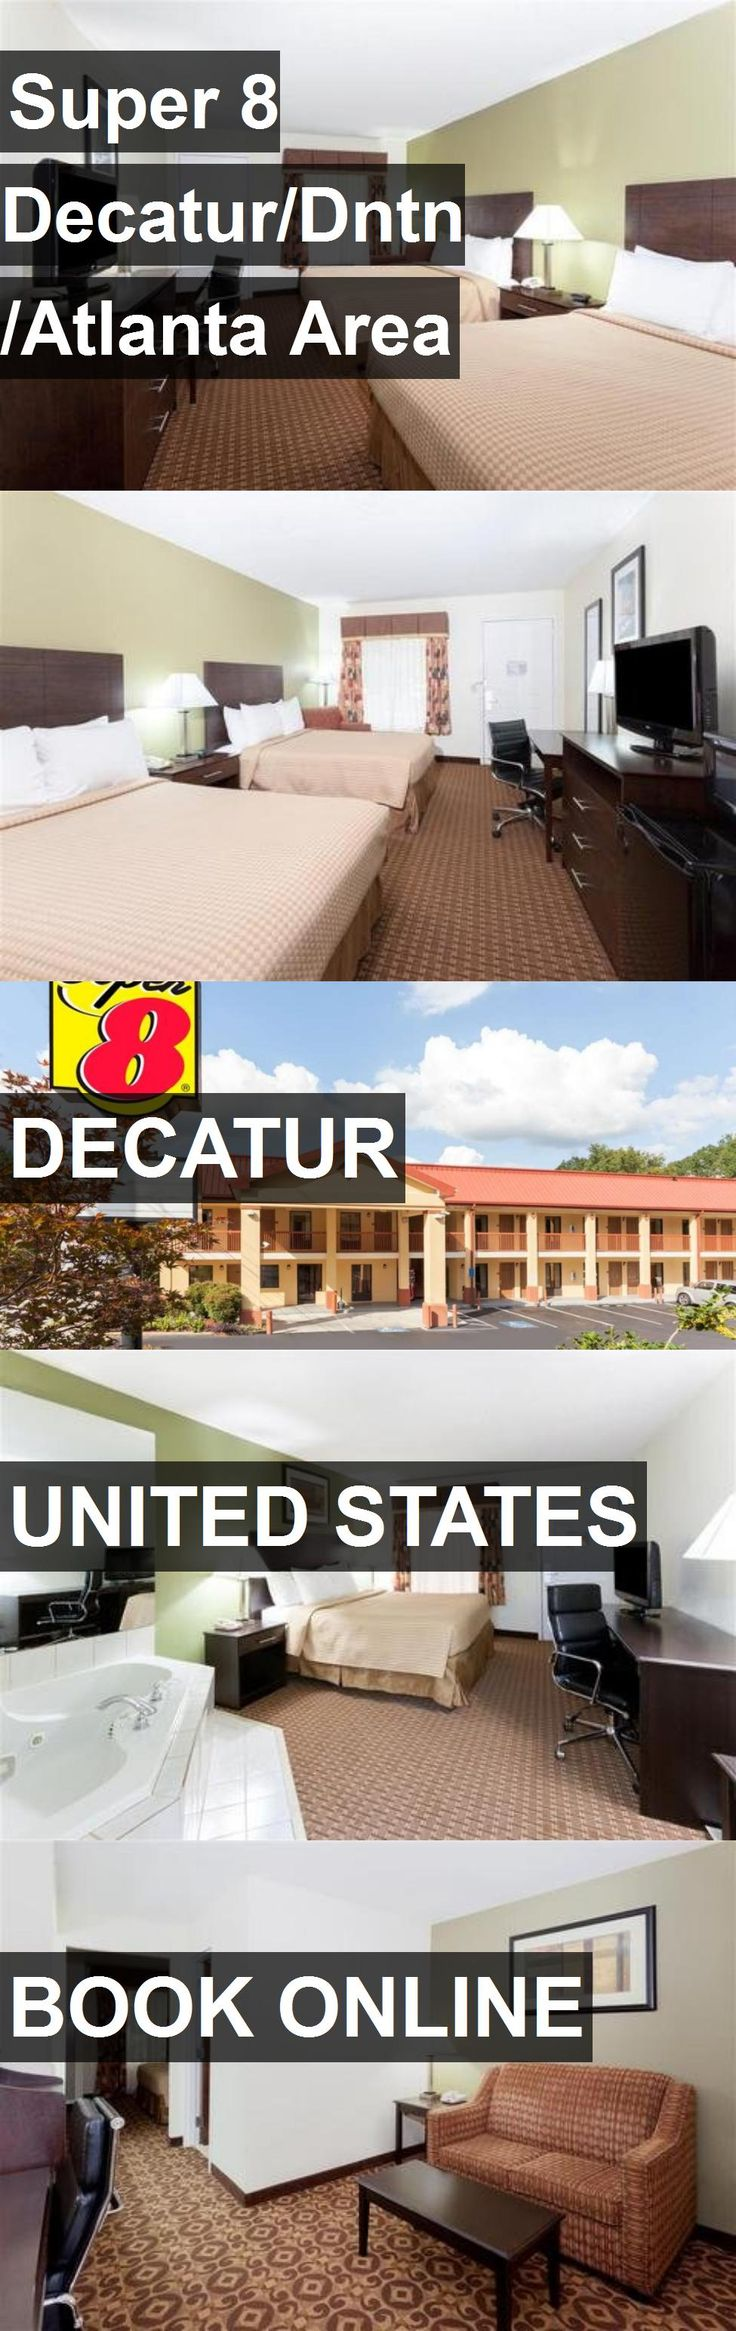 Hotel Super 8 Decatur/Dntn/Atlanta Area in Decatur, United States. For more information, photos, reviews and best prices please follow the link. #UnitedStates #Decatur #Super8Decatur/Dntn/AtlantaArea #hotel #travel #vacation